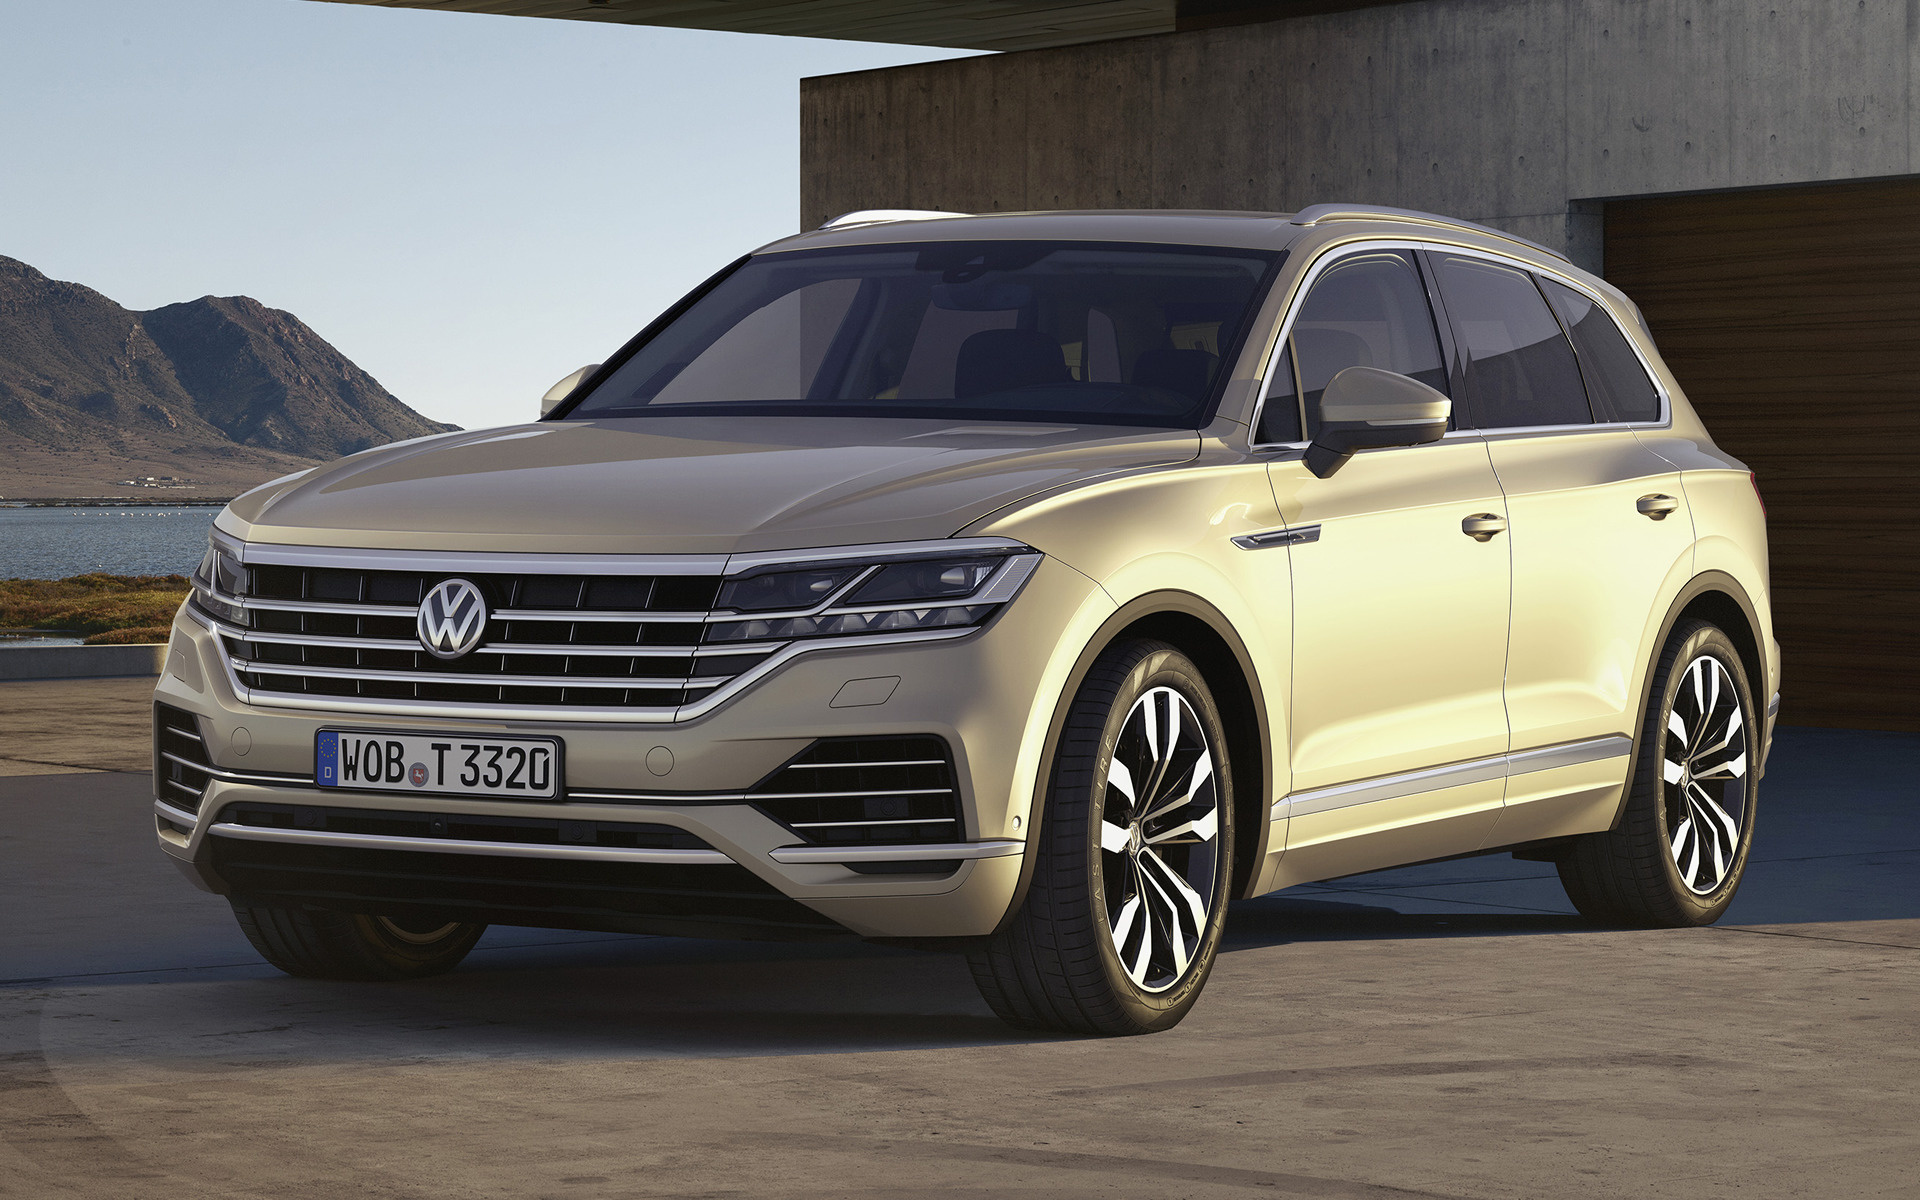 2018 Volkswagen Touareg - Wallpapers and HD Images | Car Pixel